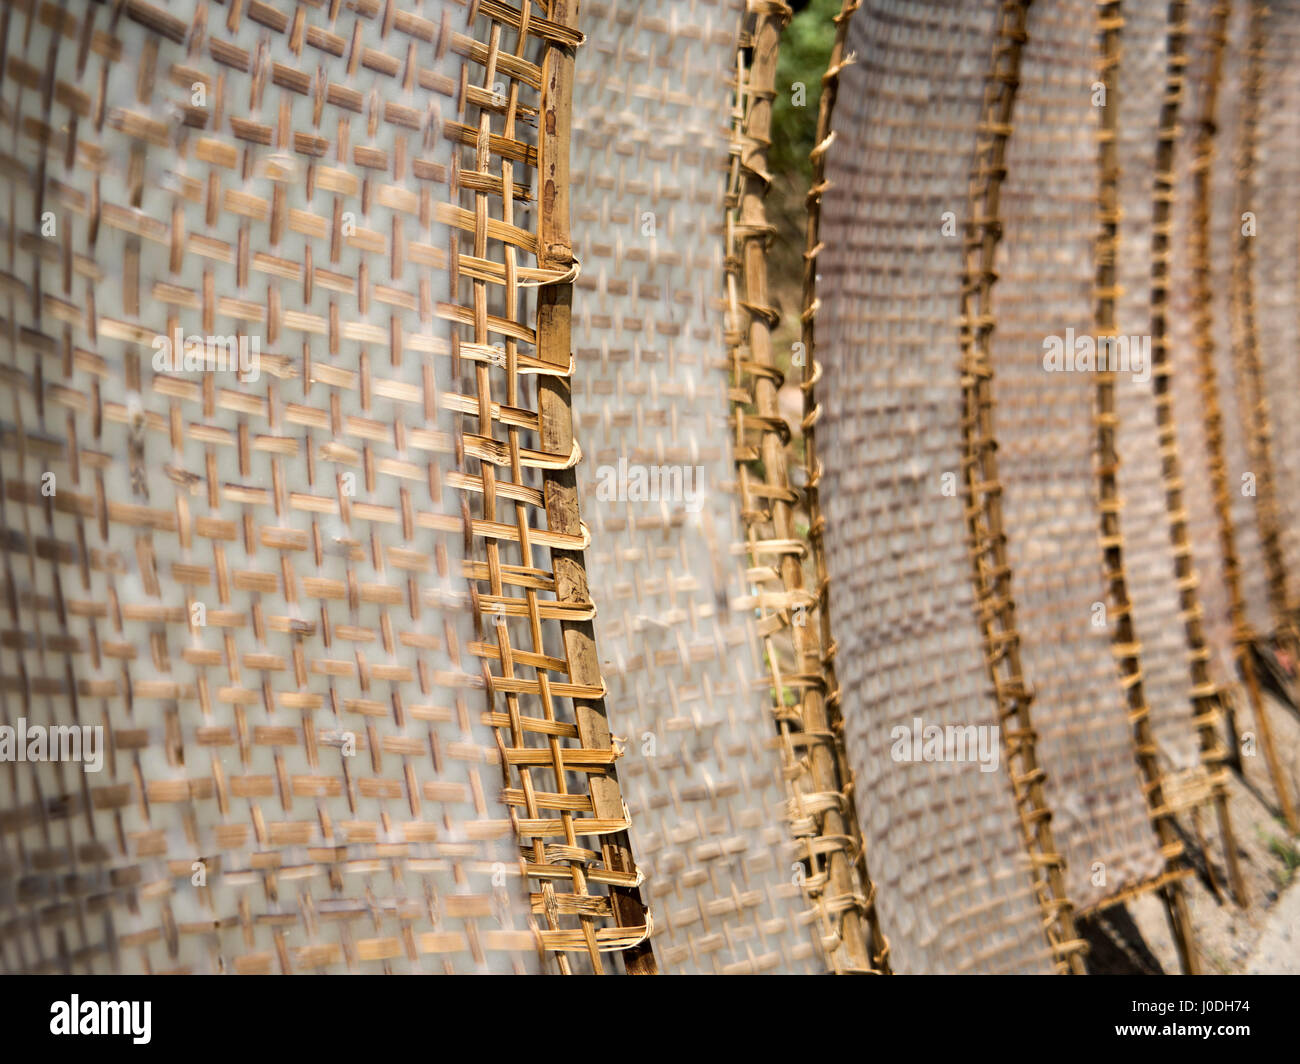 Horizontal close up of traditional white rice noodles in sheet form drying out in the sunshine in Vietnam. - Stock Image